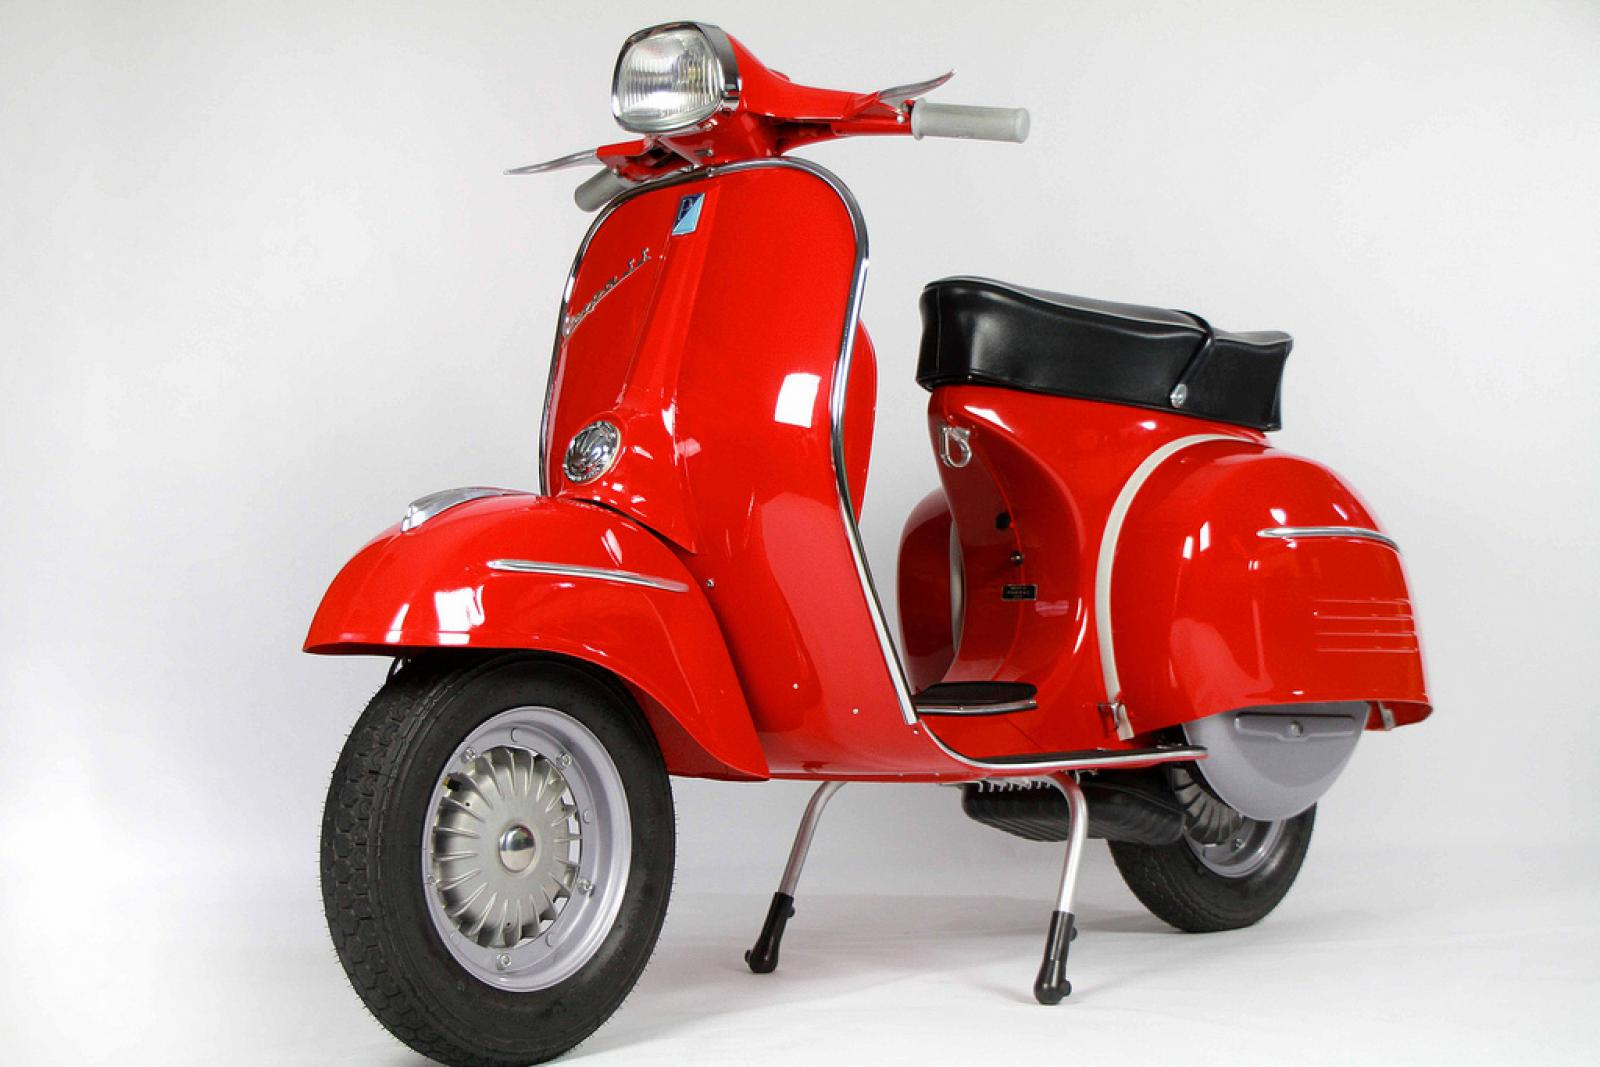 Modifikasi vespa super apps directories - 800 1024 1280 1600 Origin Vespa